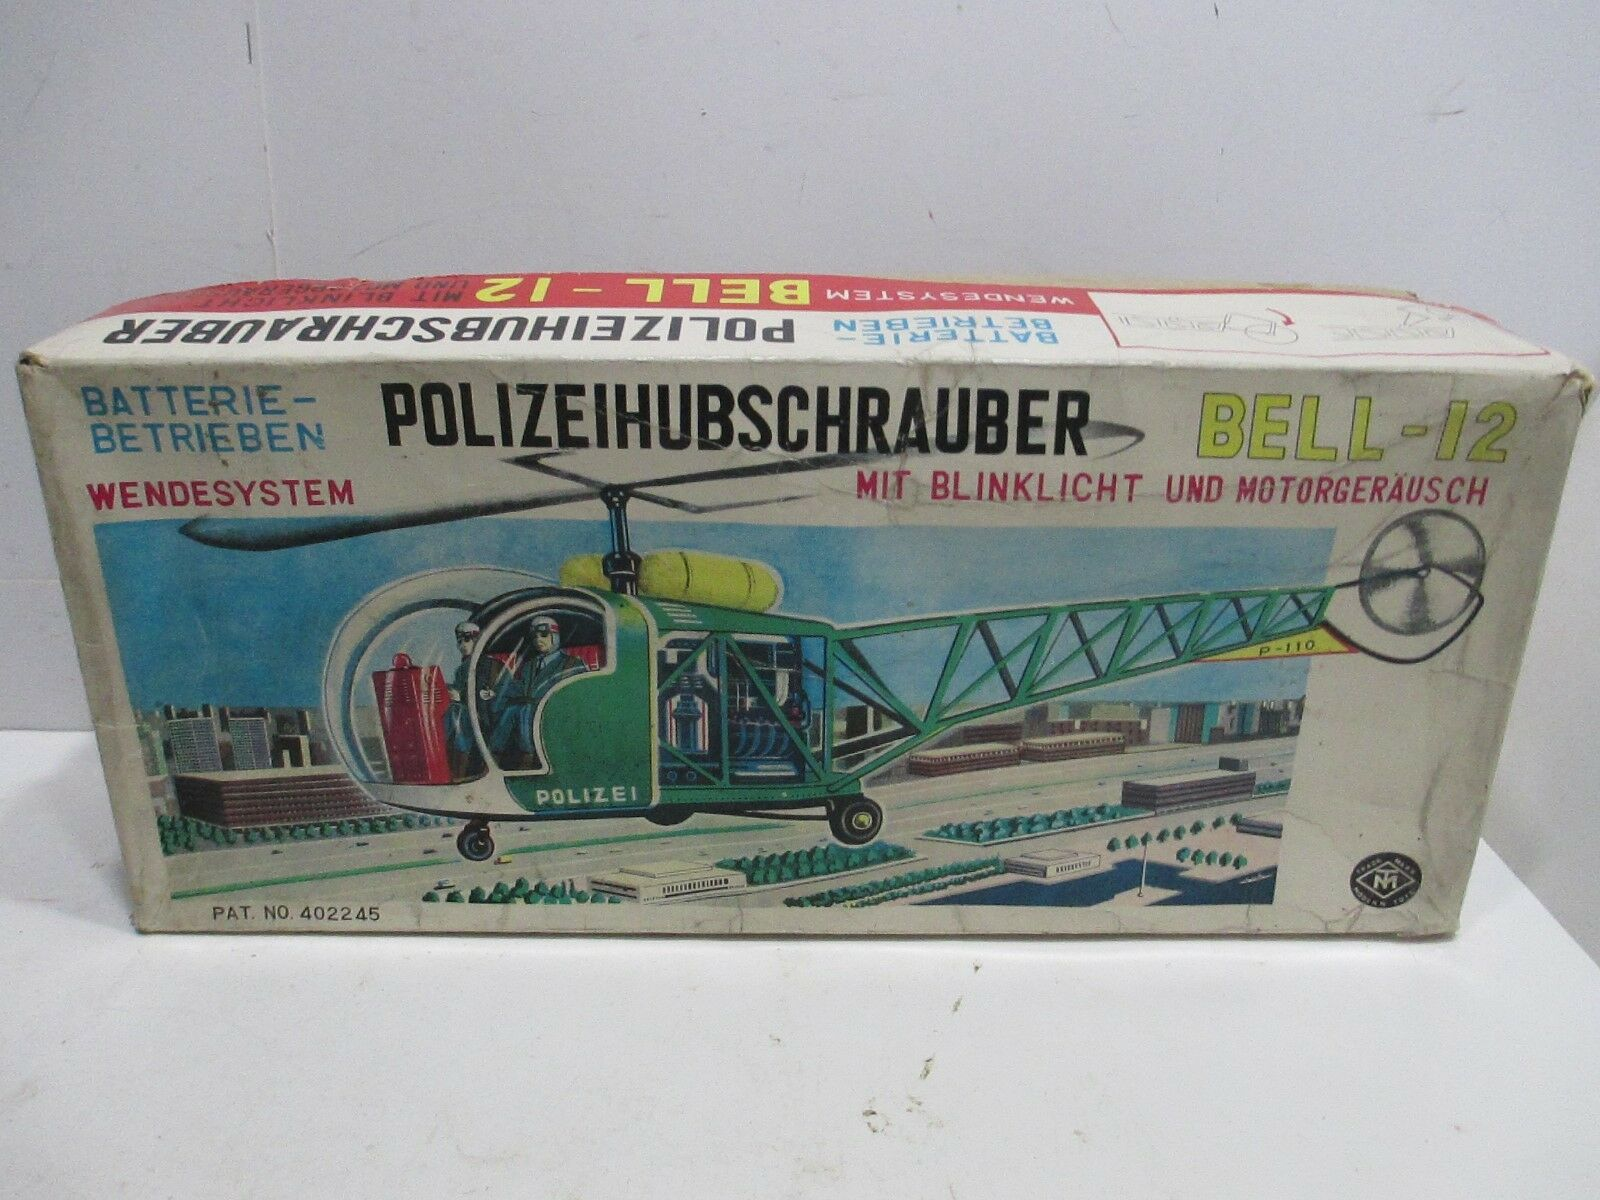 HELICOPTER BELL 12 12 12 POLICE PARTOL MINT IN BOX BATTERY OP TESTED WORKS GOOD eff1d1